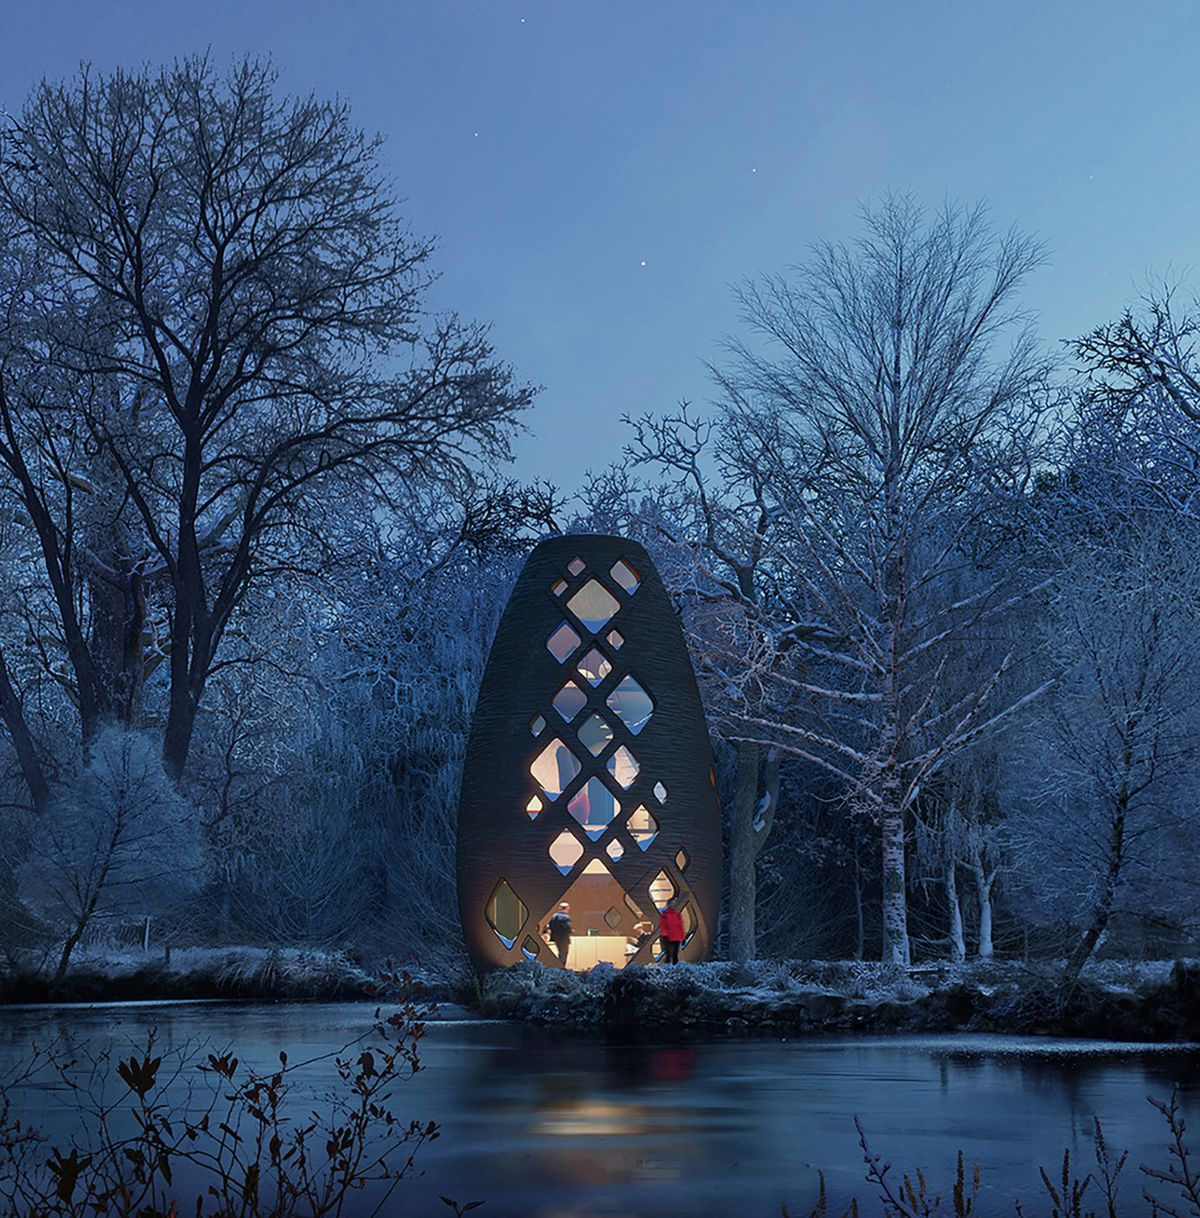 Rendering of a bean-shaped pod home standing vertically along a snowy river bank. The facade of diamond-shaped windows show a glowing interior.